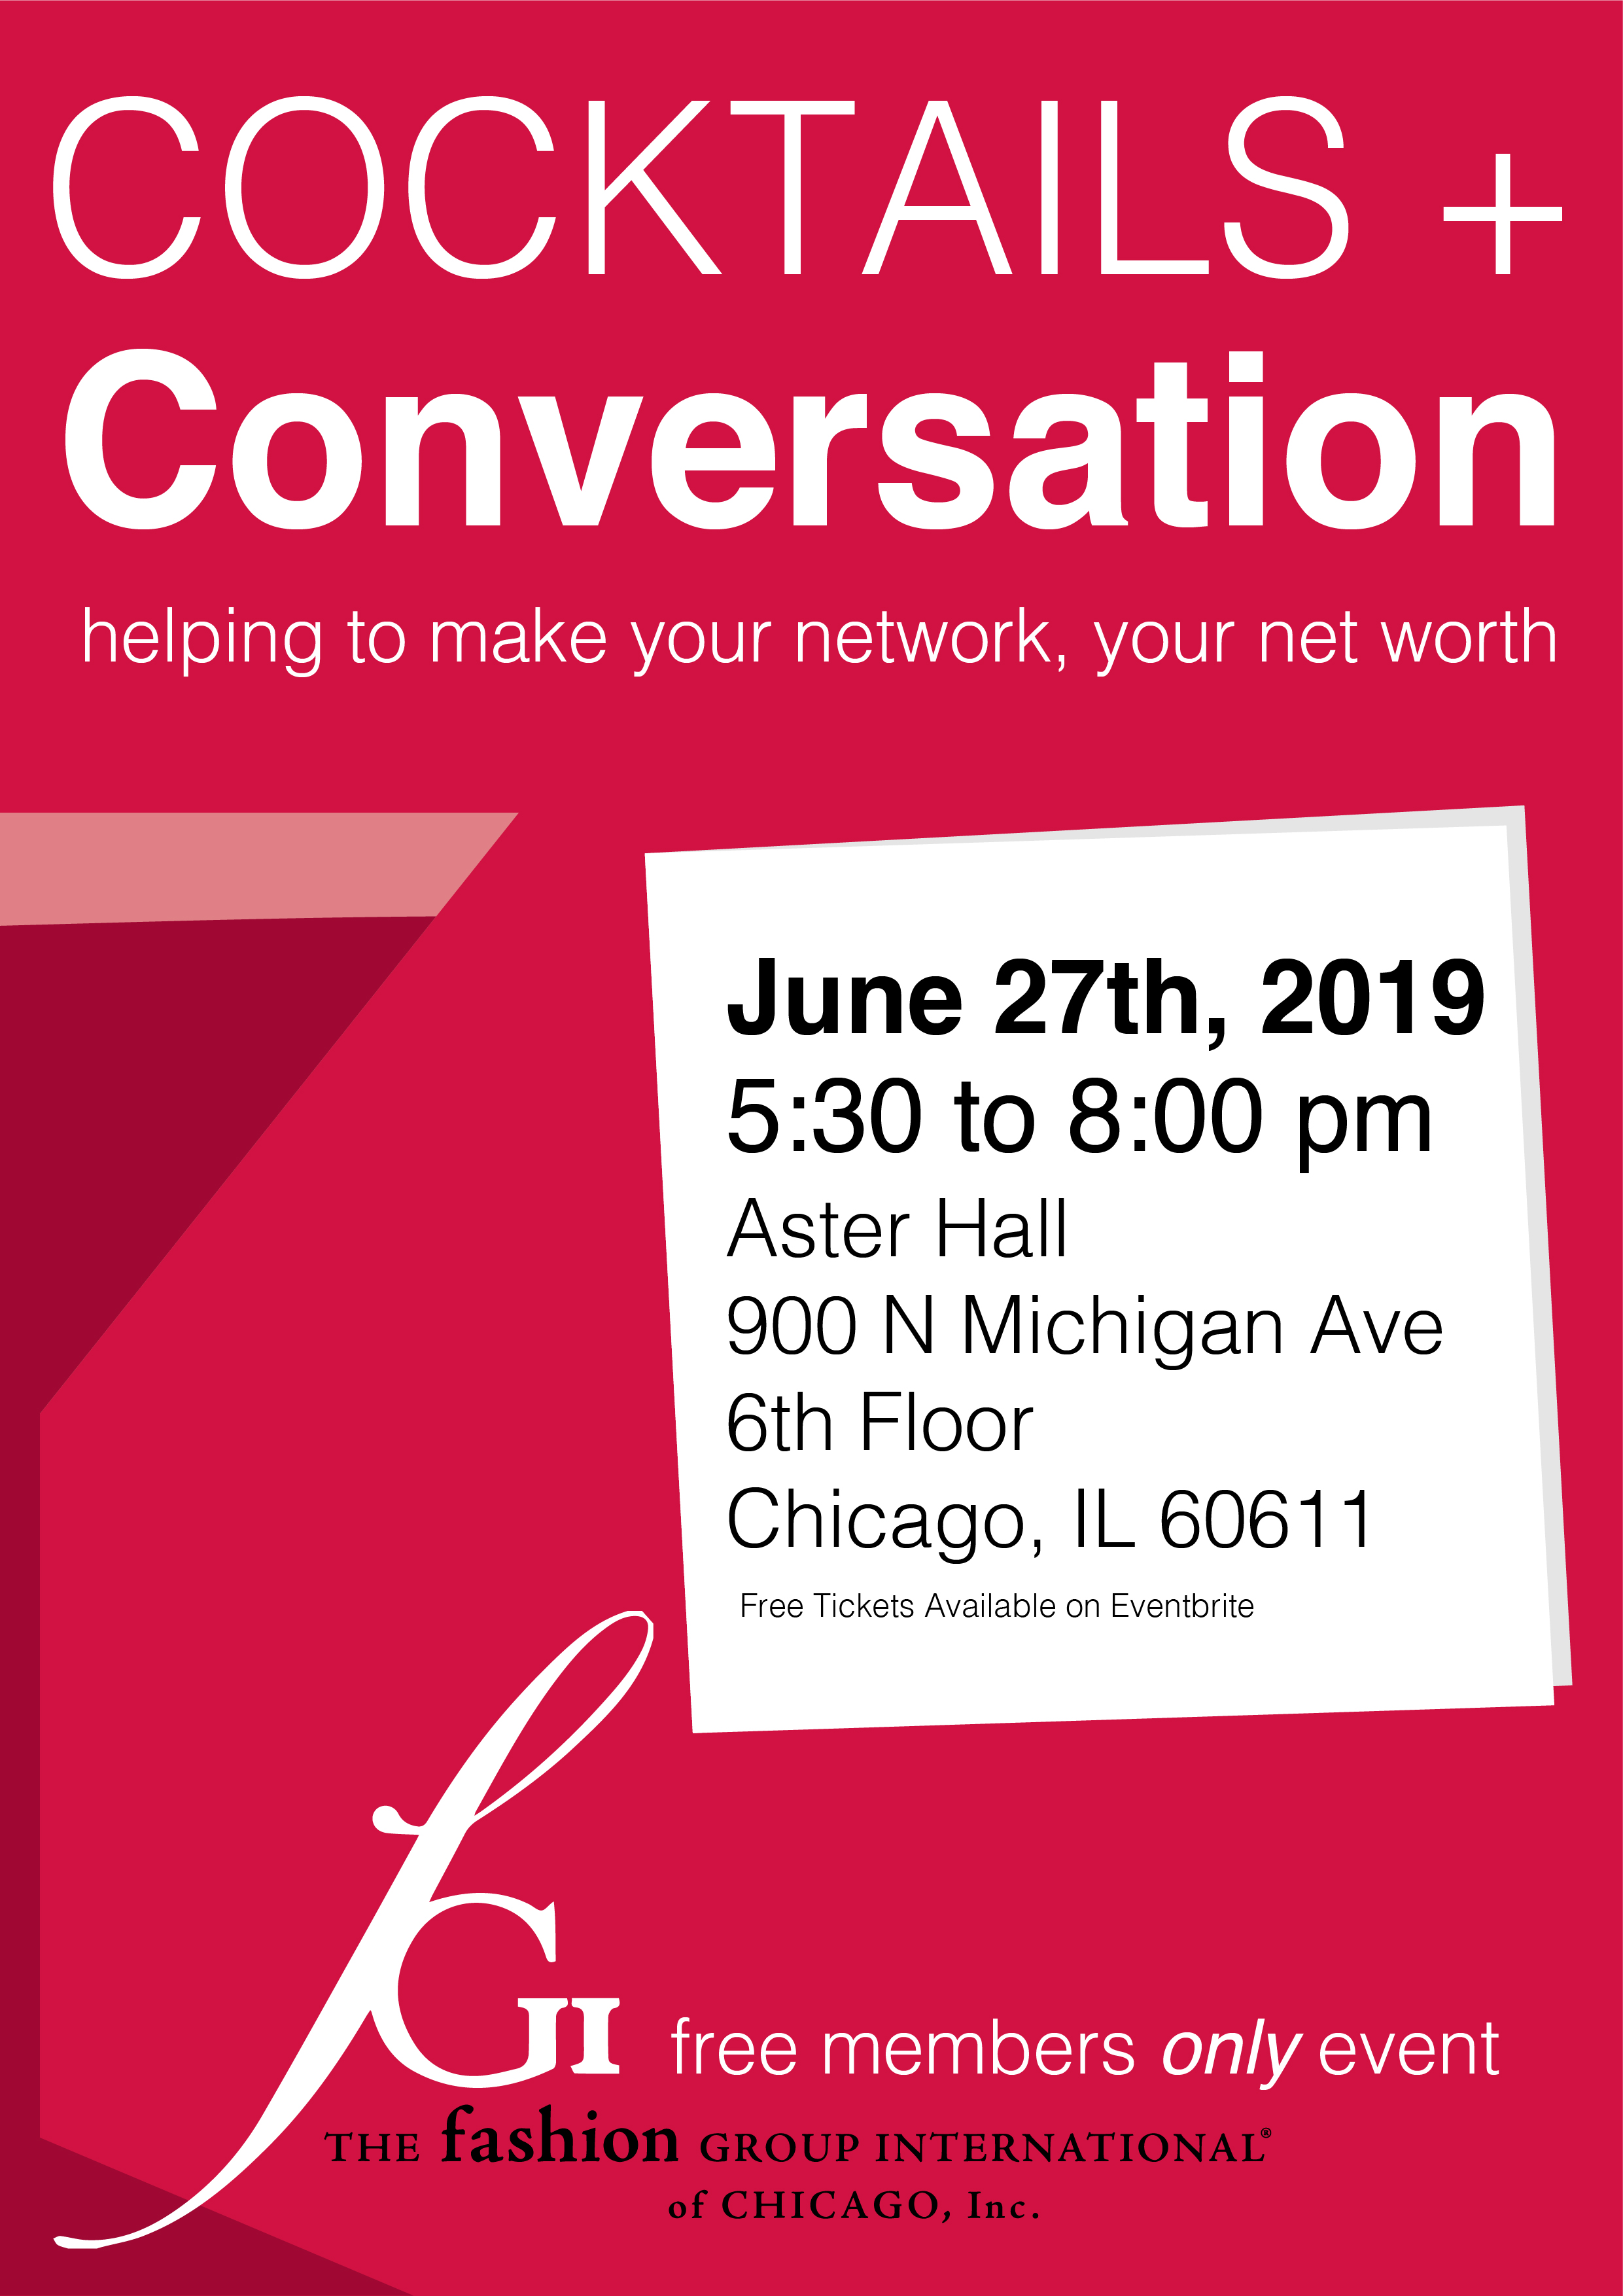 2019 Cocktails and Conversation FGI Members Only Free Event